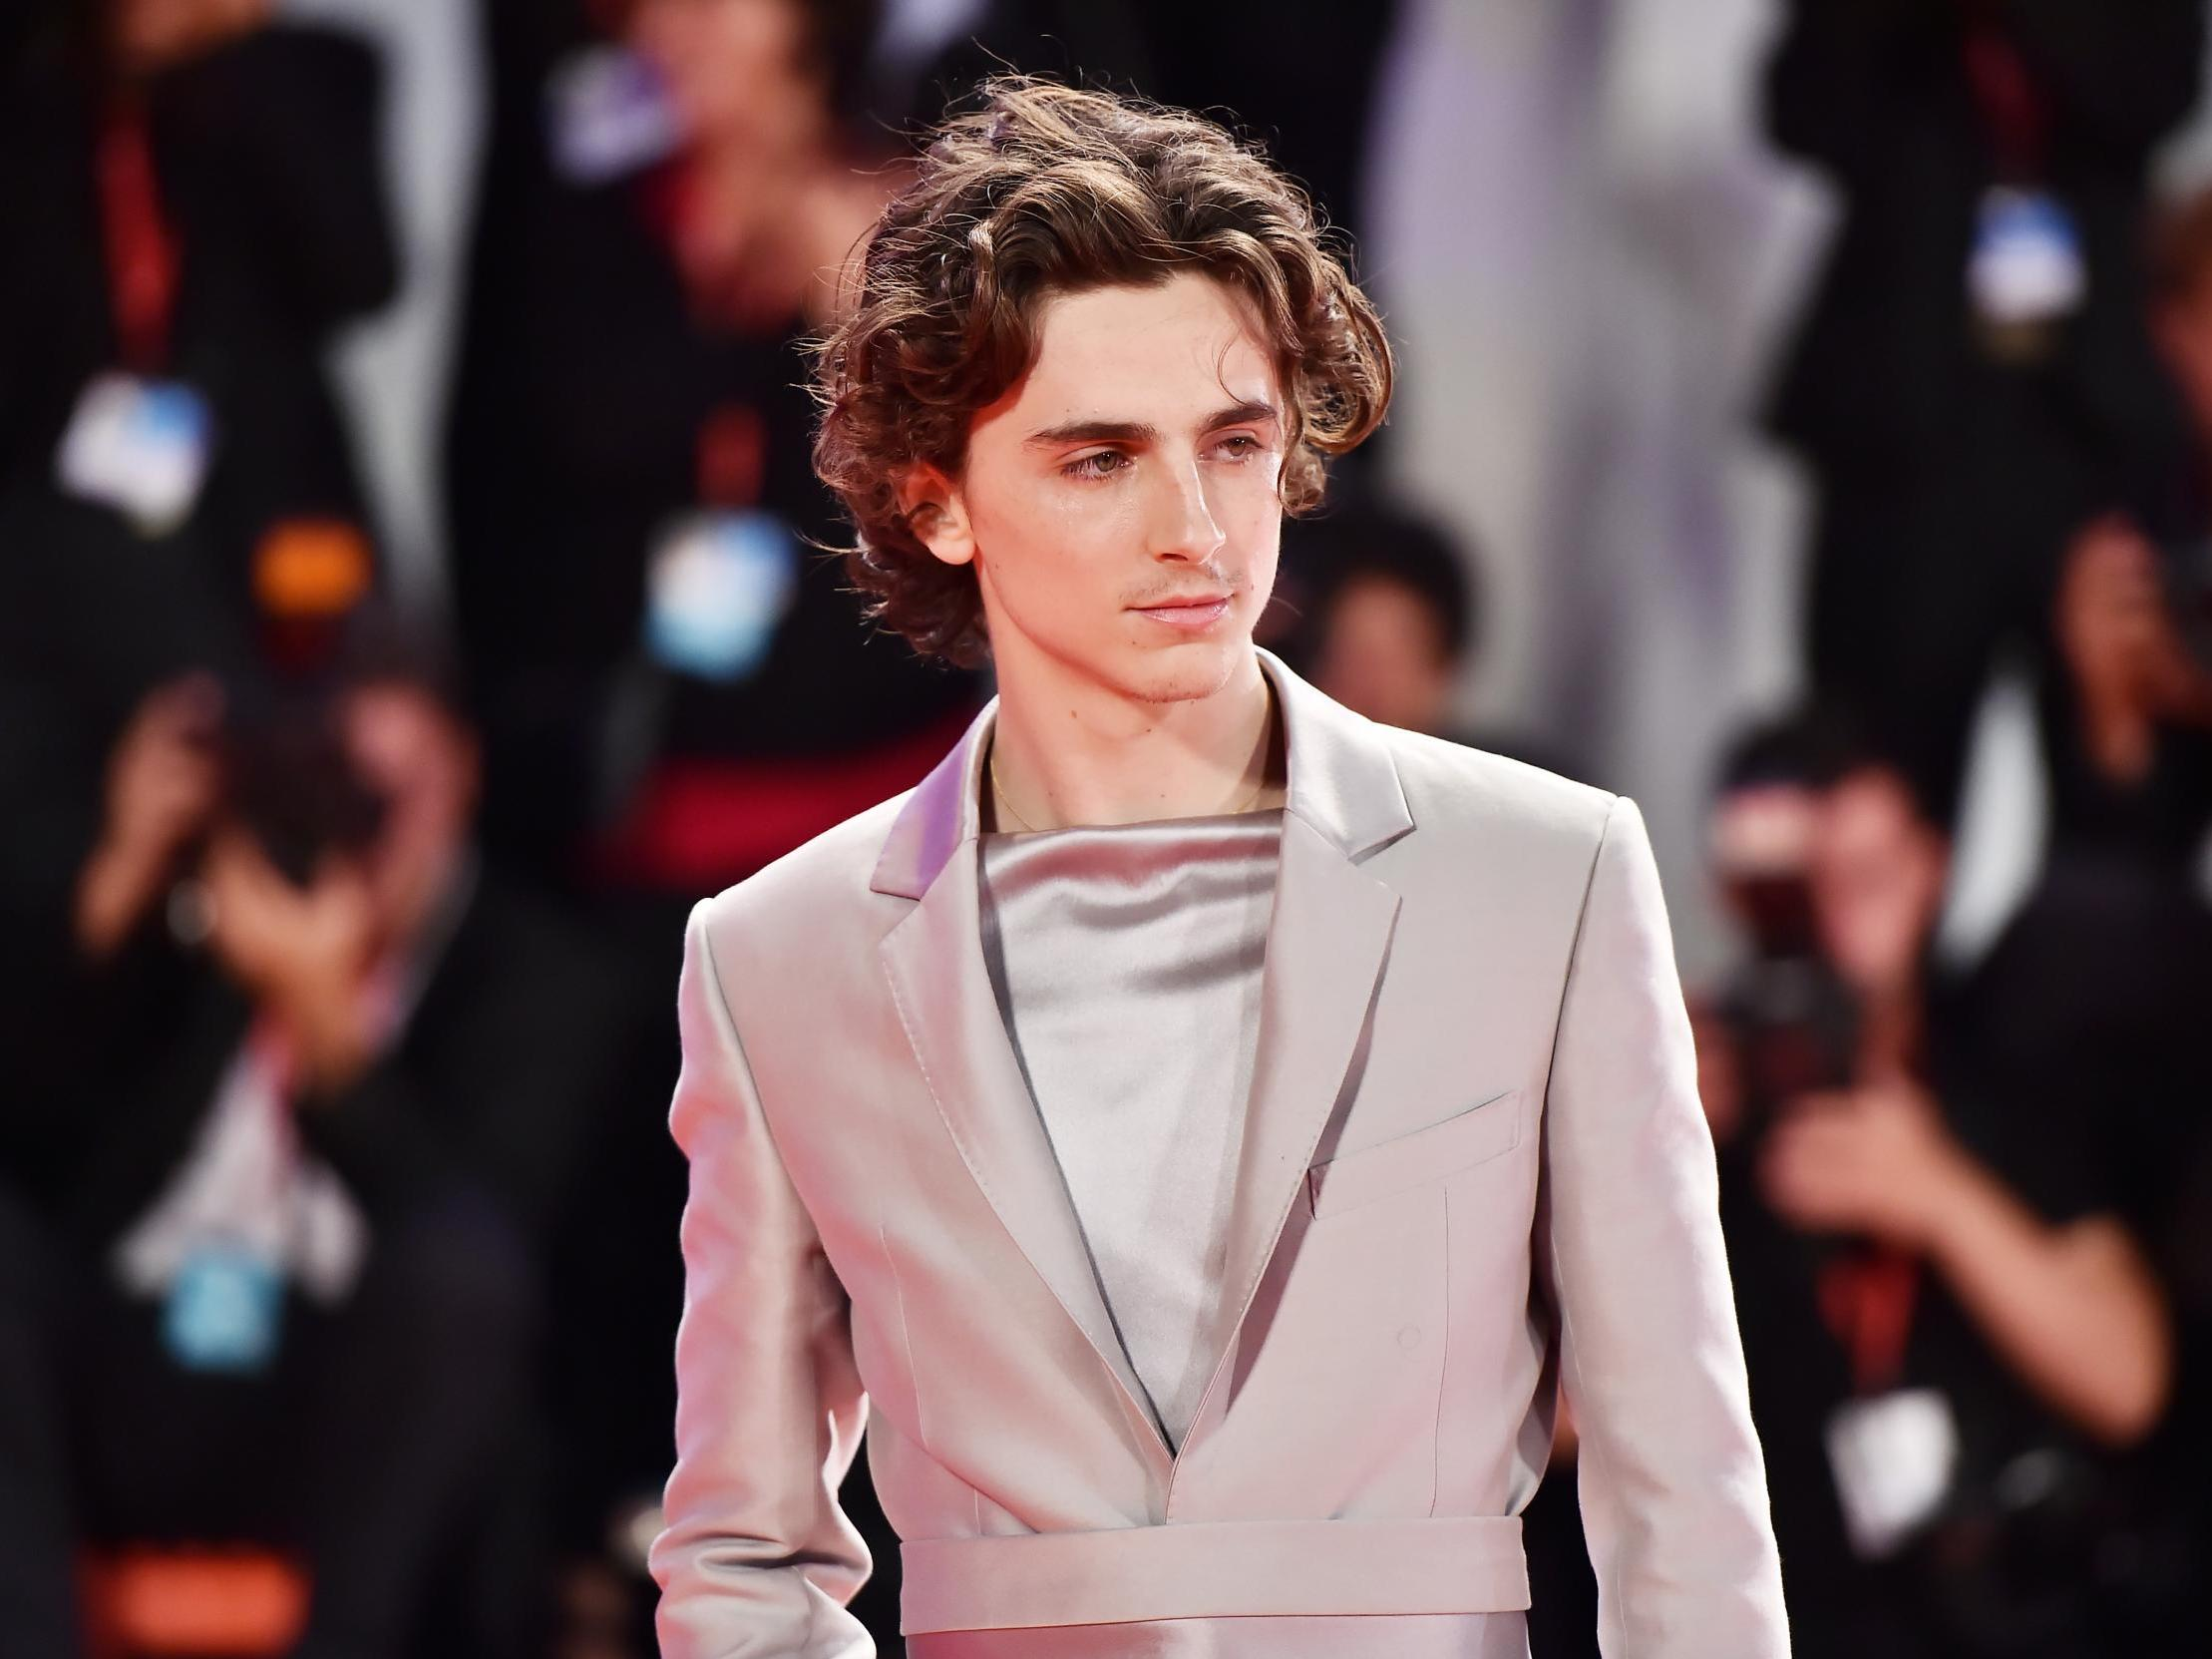 Timothée Chalamet's best red carpet looks, from his patterned suits to that harness